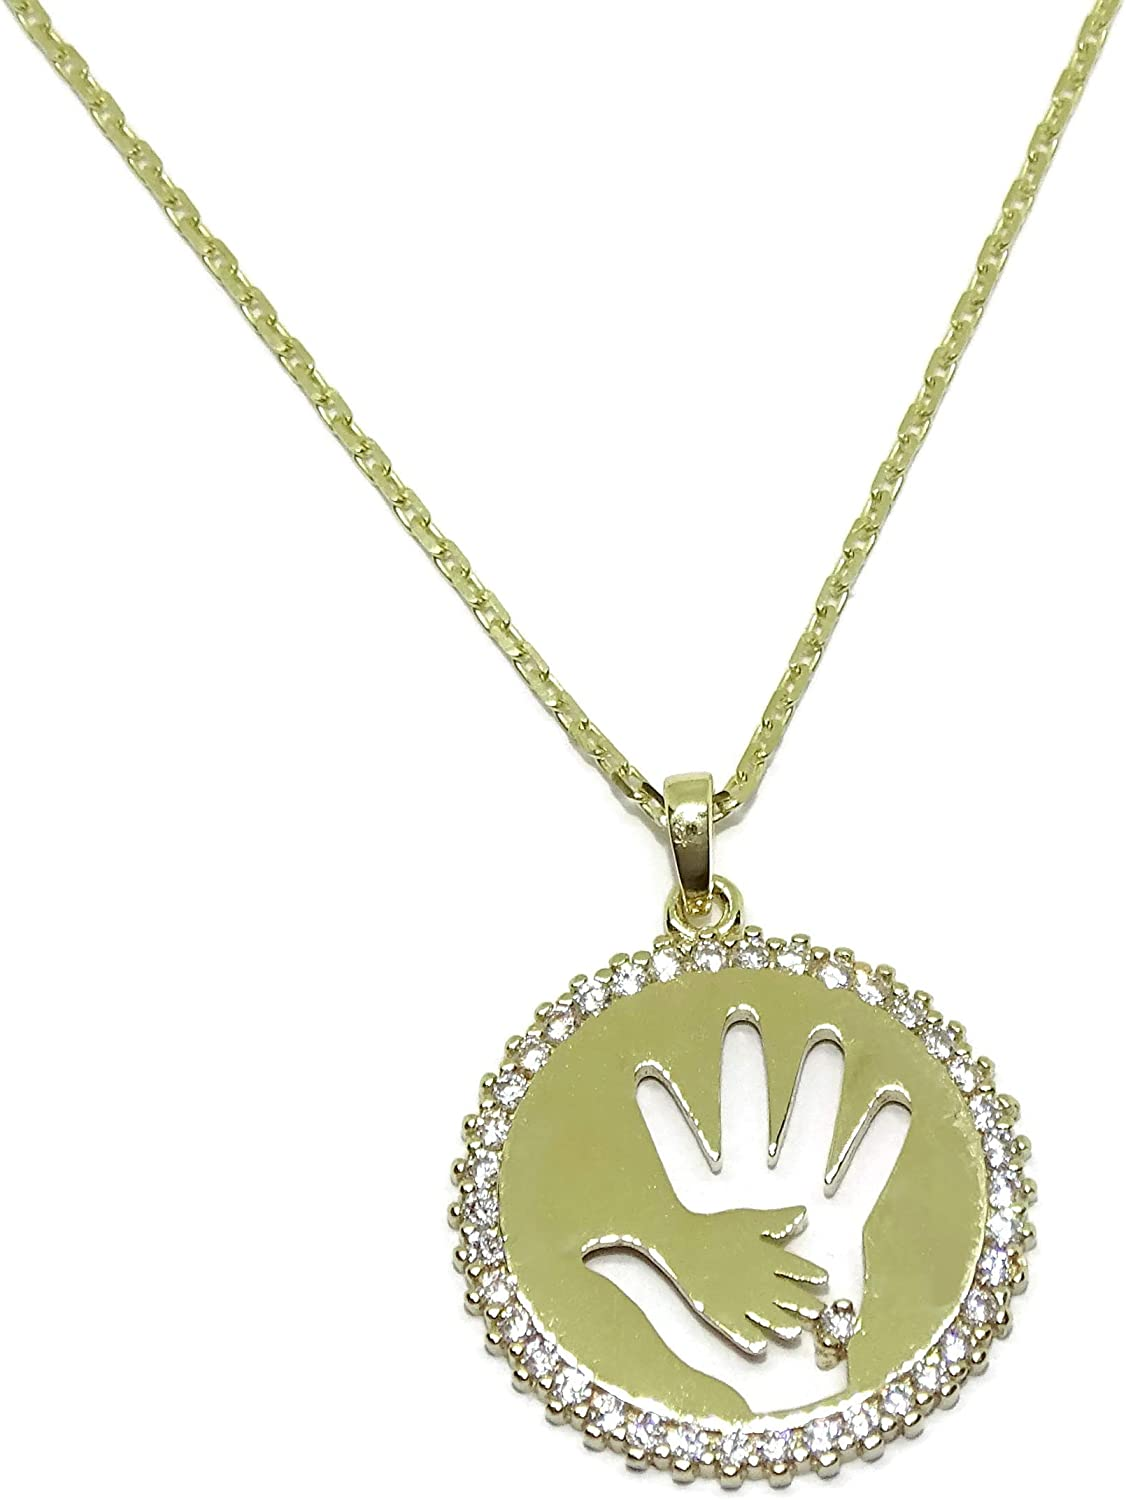 Never say Never 9K Gold Linking Hands Collar Necklace for Moms | Round Zirconia Pendant Charm Chain 45cm long | 2.40g Real Gold | Meaningful Jewelry | Brilliant Gift for Mothers